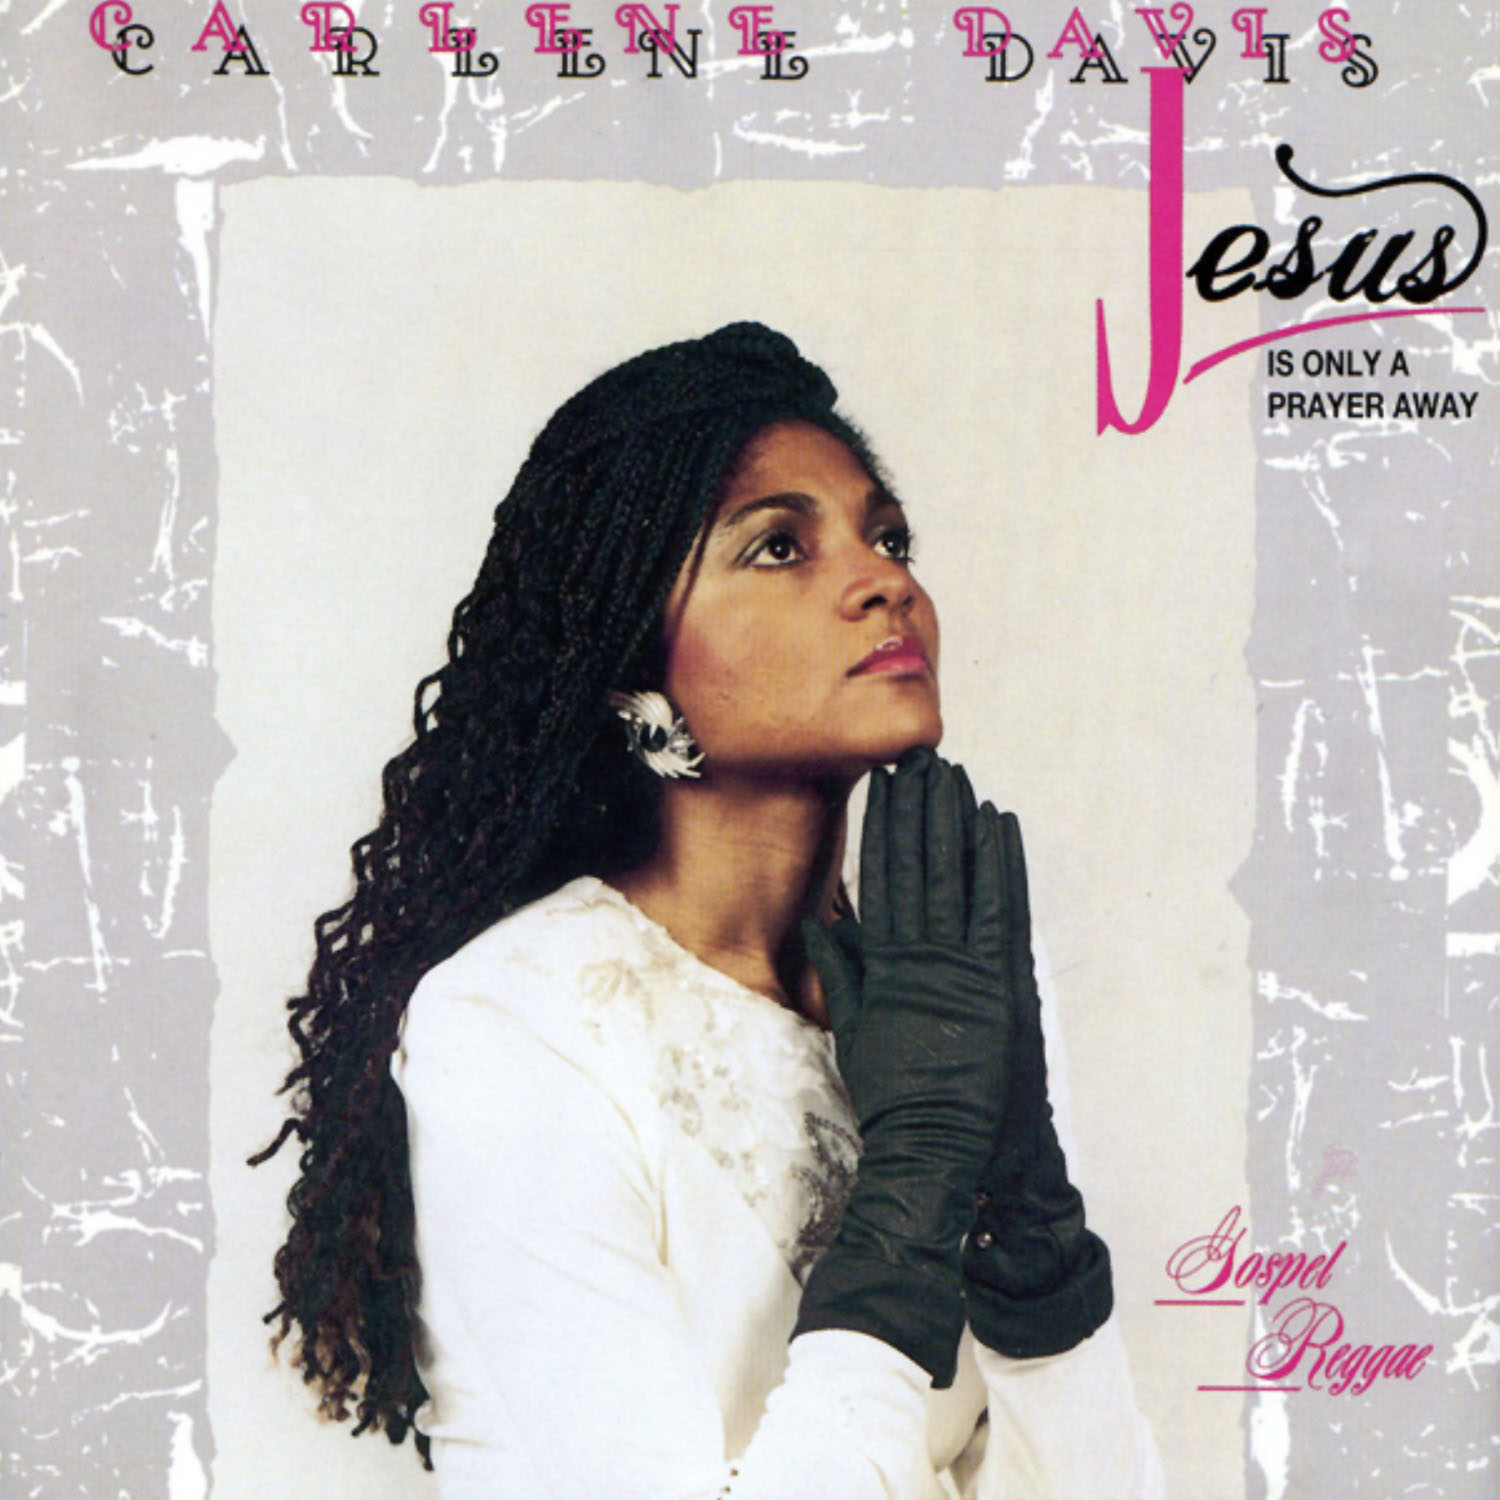 Carlene Davis – Jesus Is Only A Prayer Away